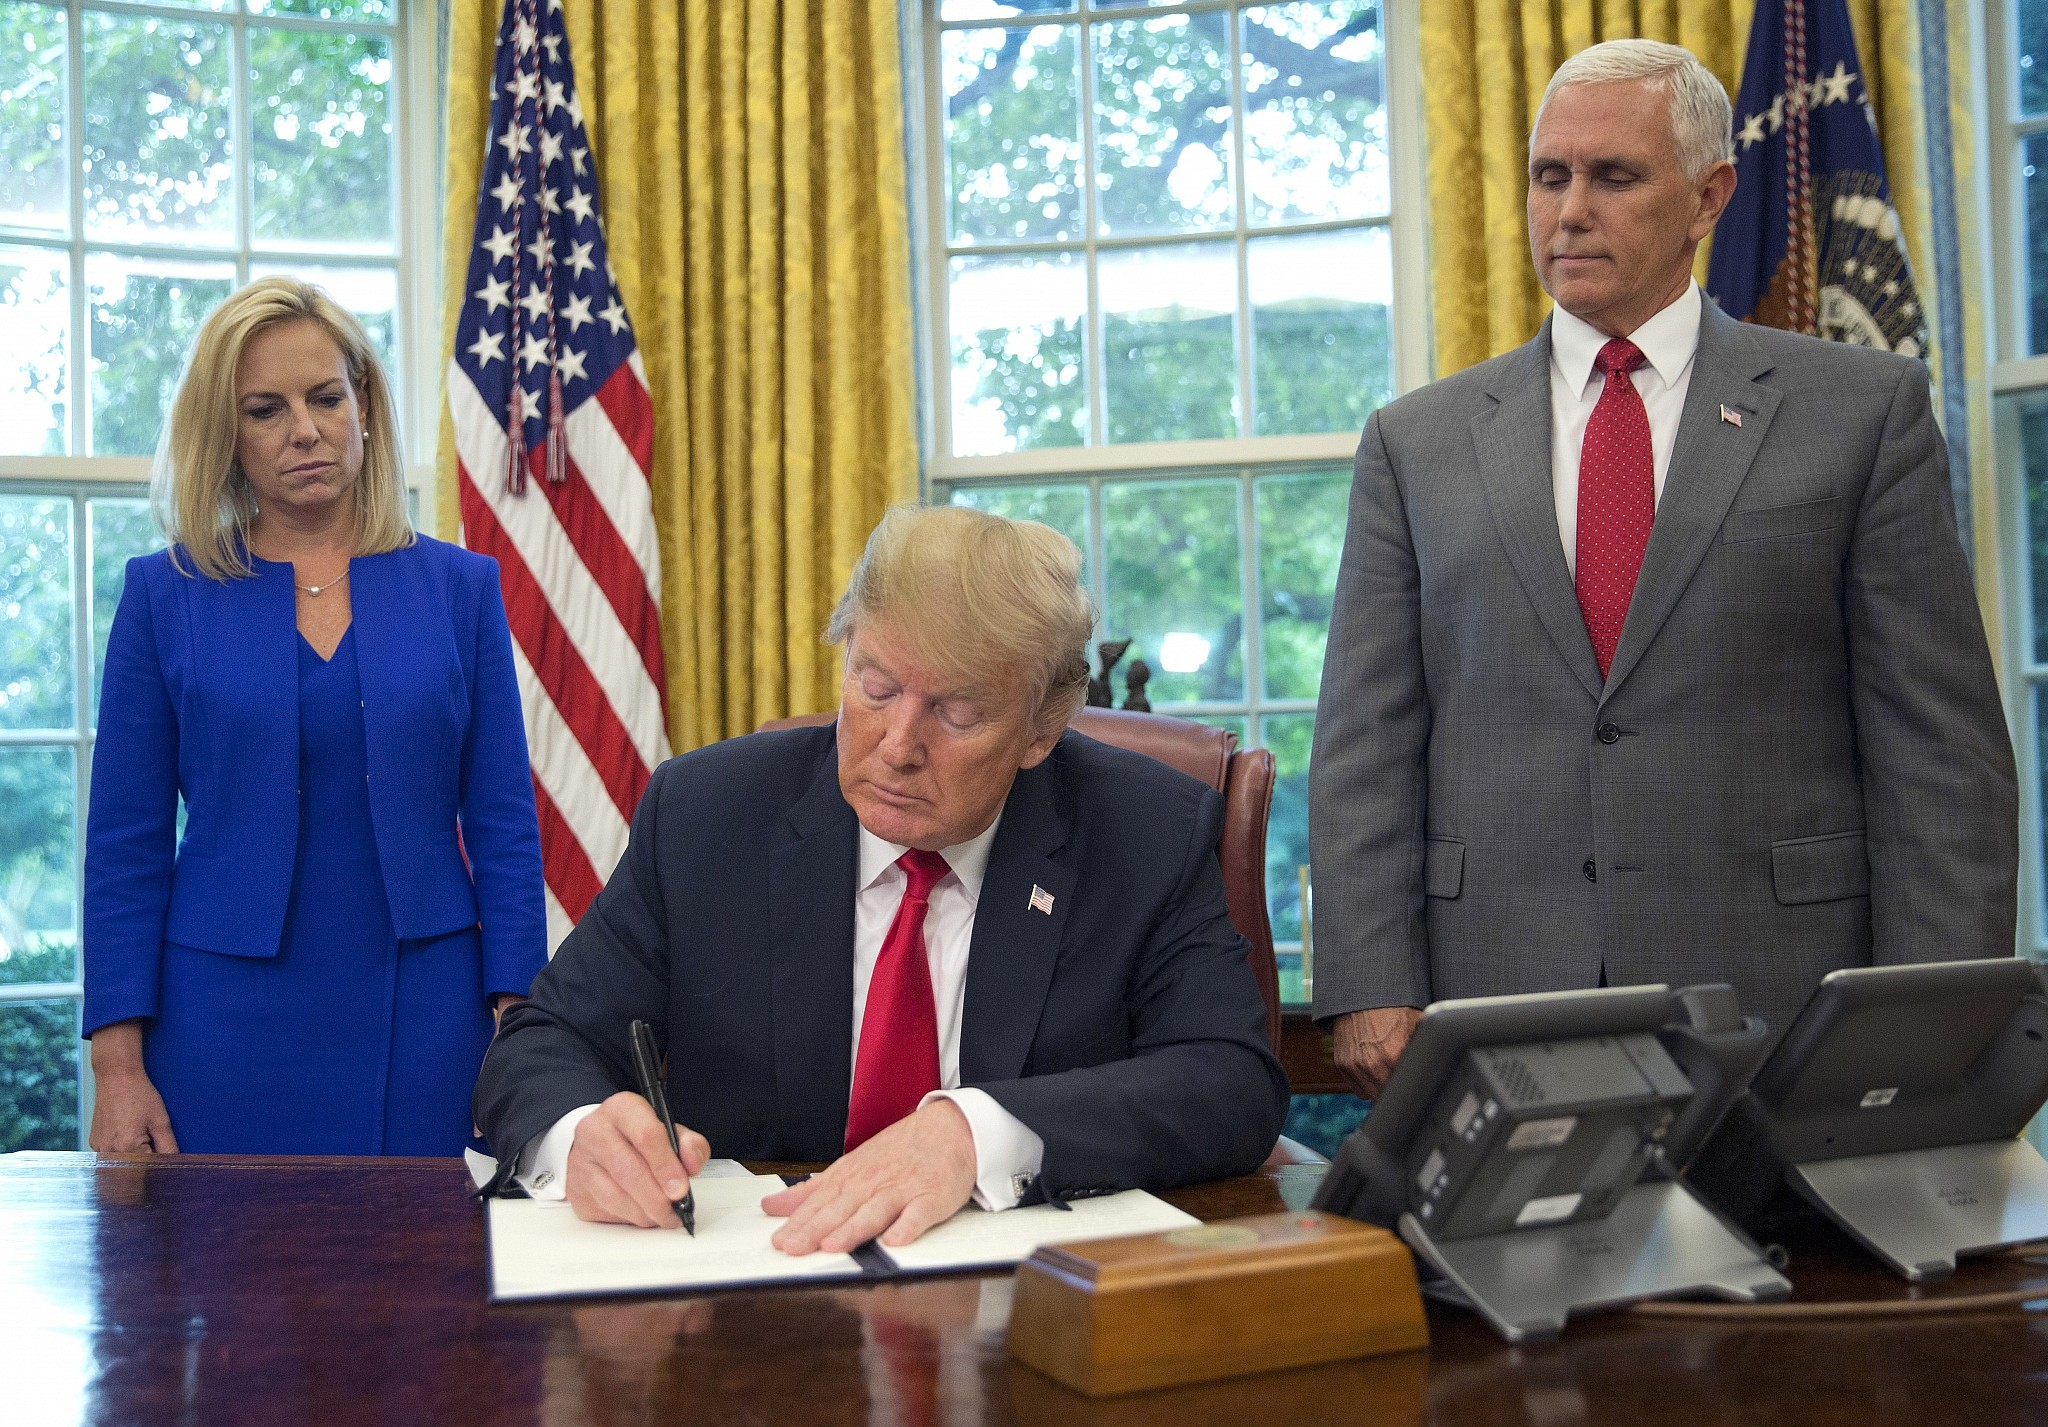 Trump signs executive order stopping family separation policy